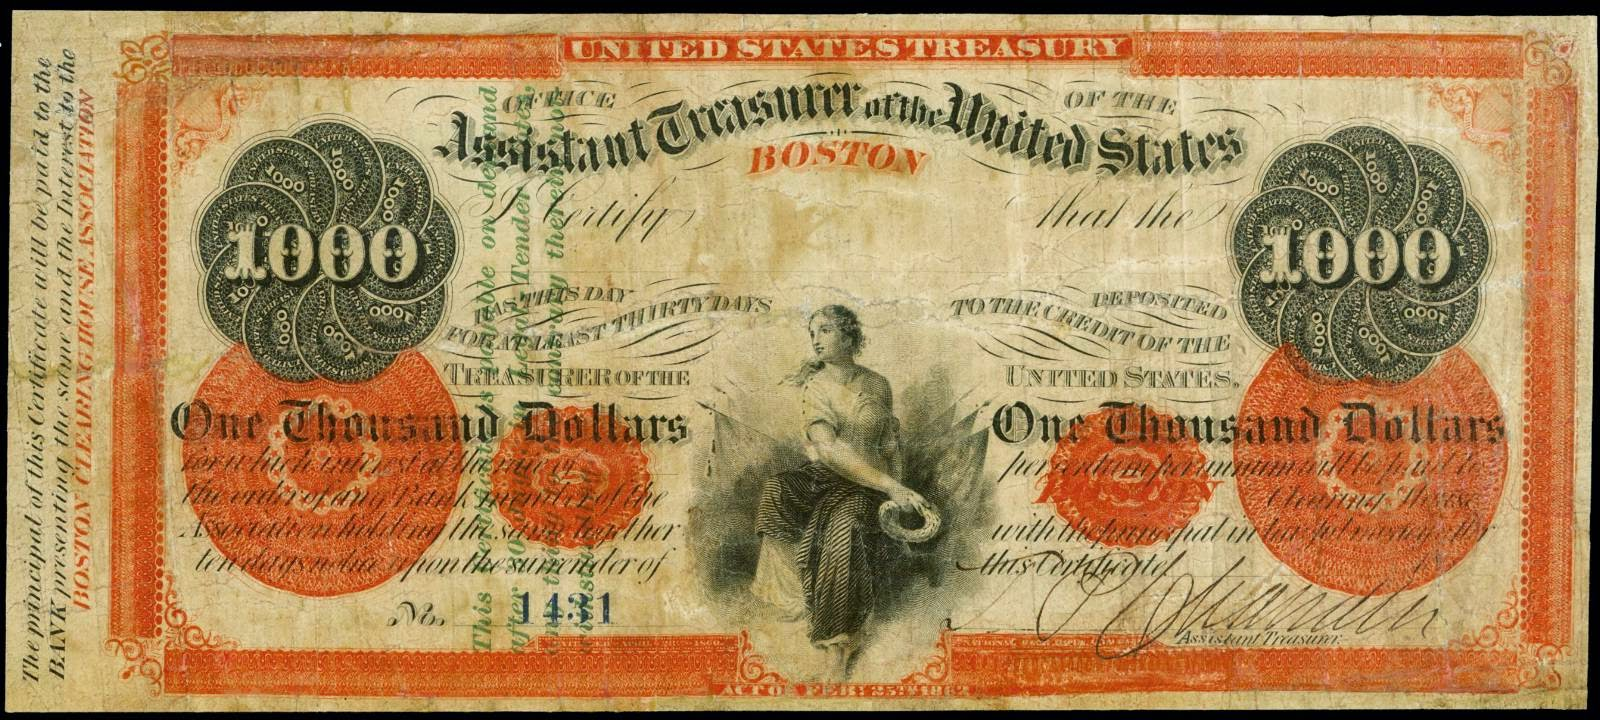 1862 1000 Dollar bill Boston Designated Depositary Certificate